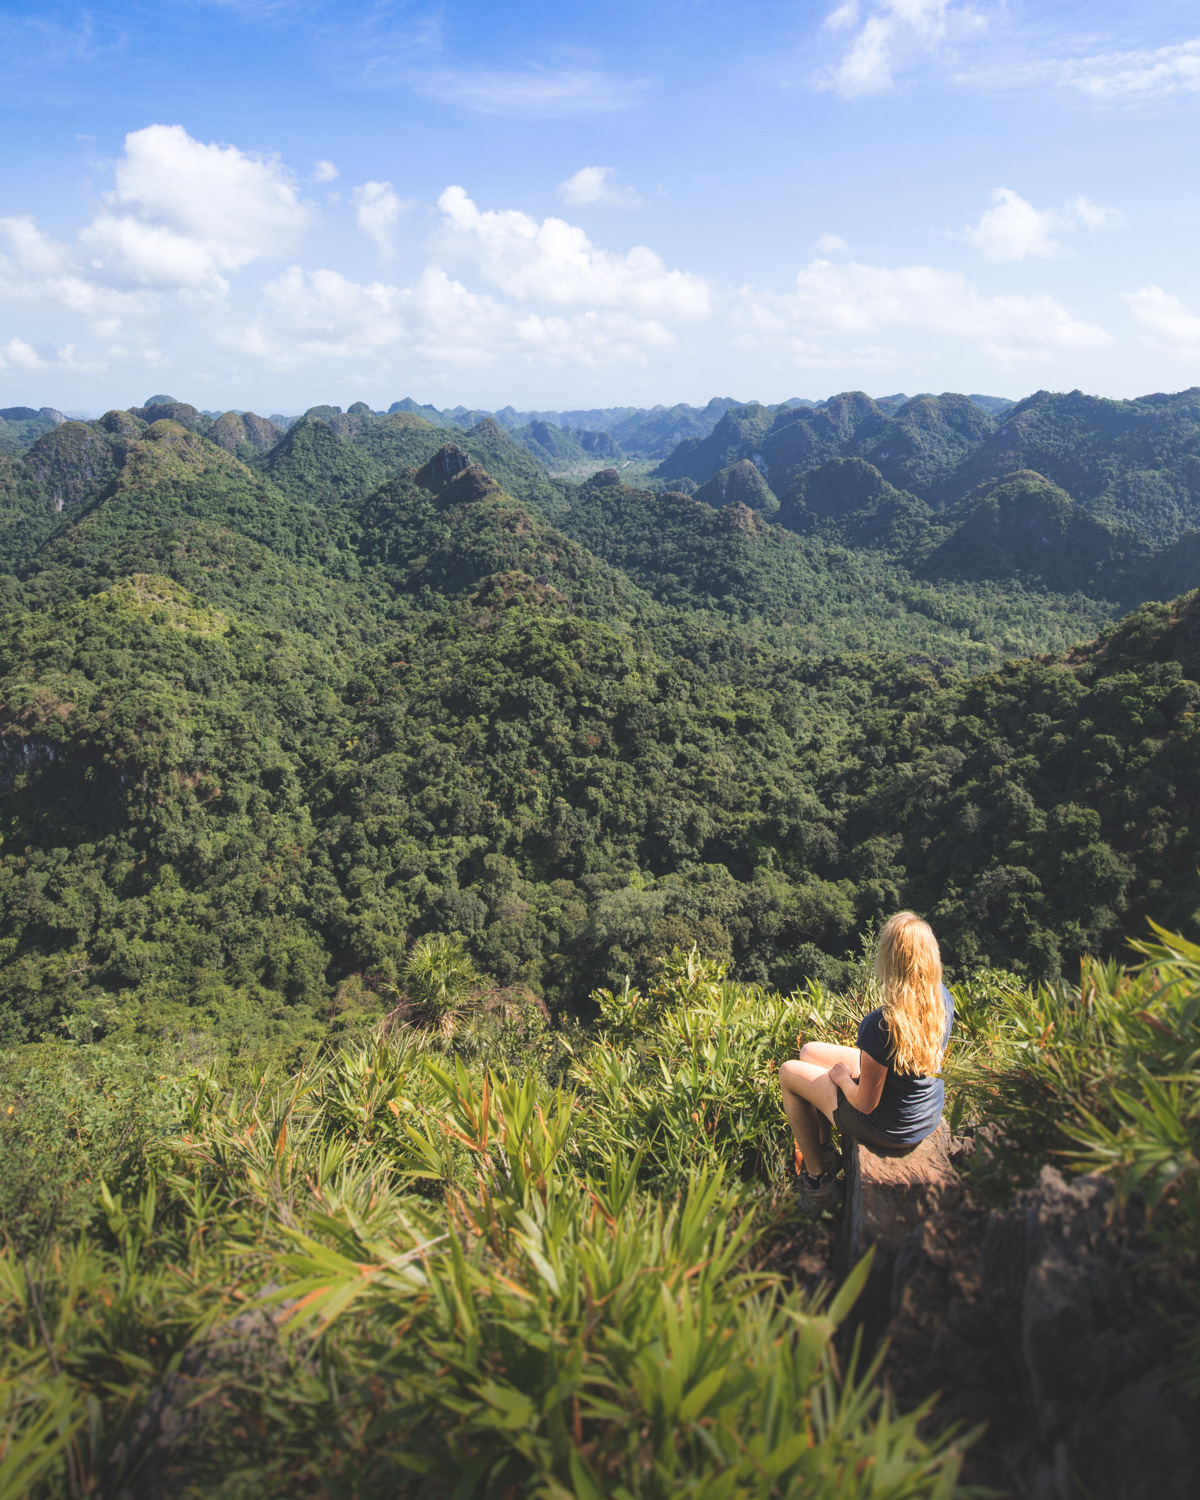 The stunning view from Ngu Lam Peak on Cat Ba Island